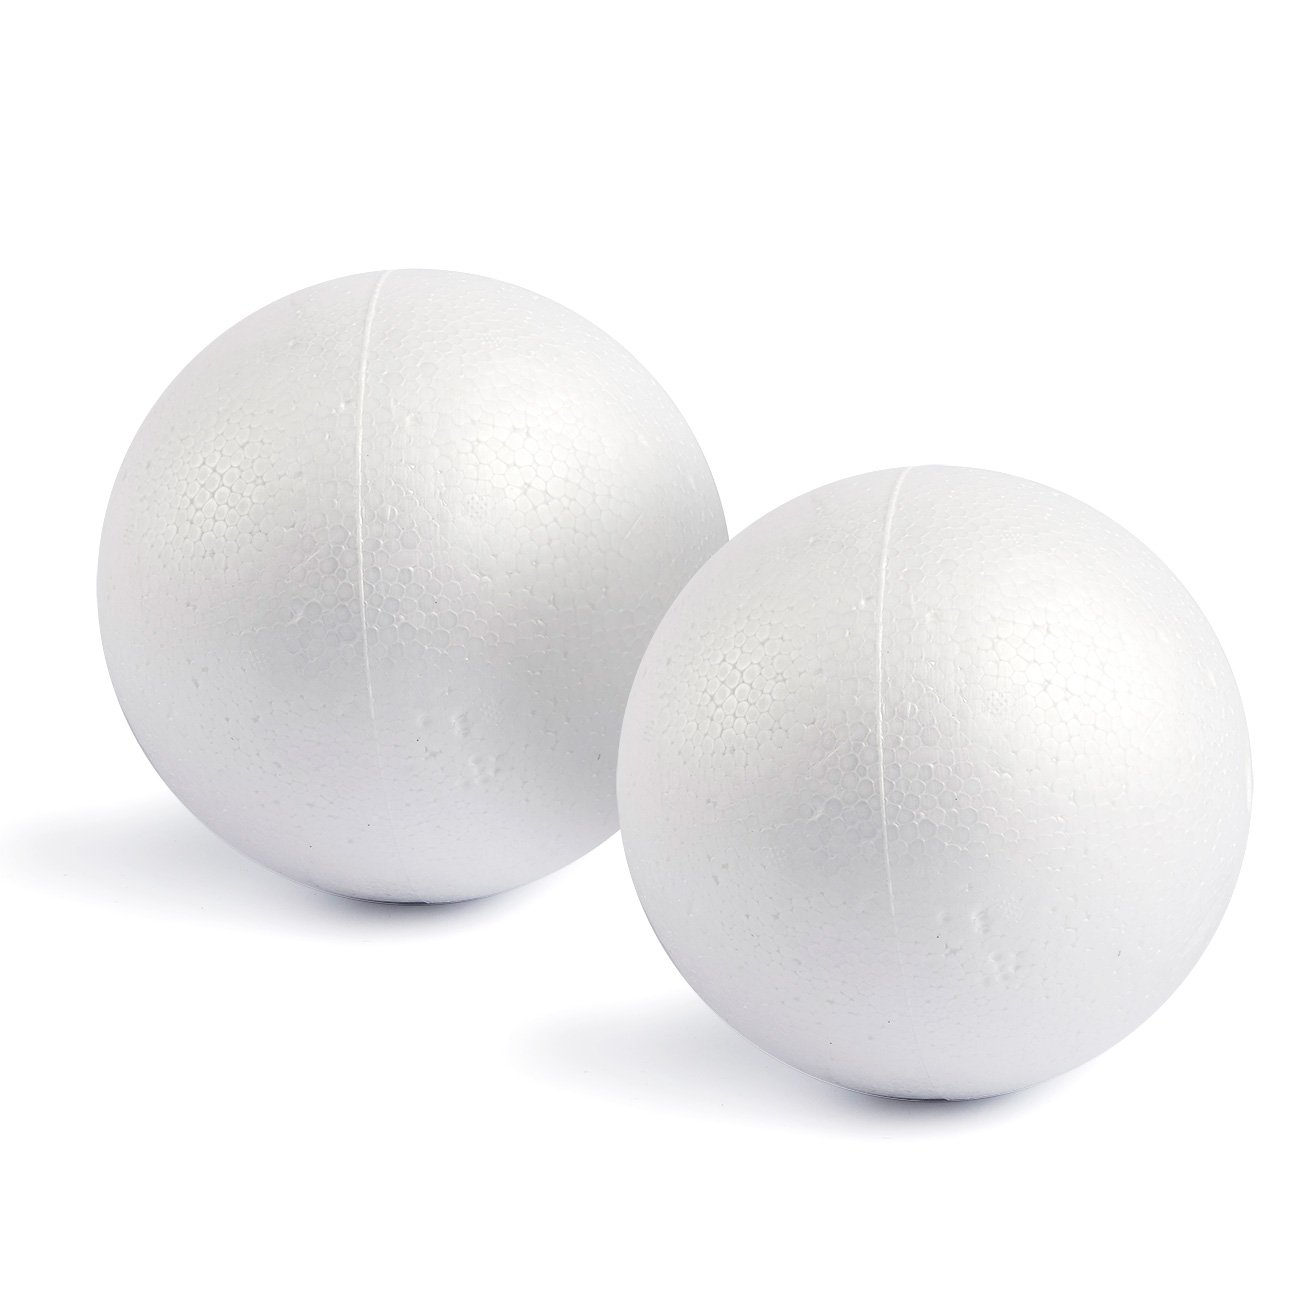 Craft Foam Balls - 2-Pack Large Smooth and Round Polystyrene Foam Balls for Art and Craft Use - Makes DIY Ornaments, Wedding Decor, Science Modeling, School Projects - White, 7.87 Inches in Diameter Juvale